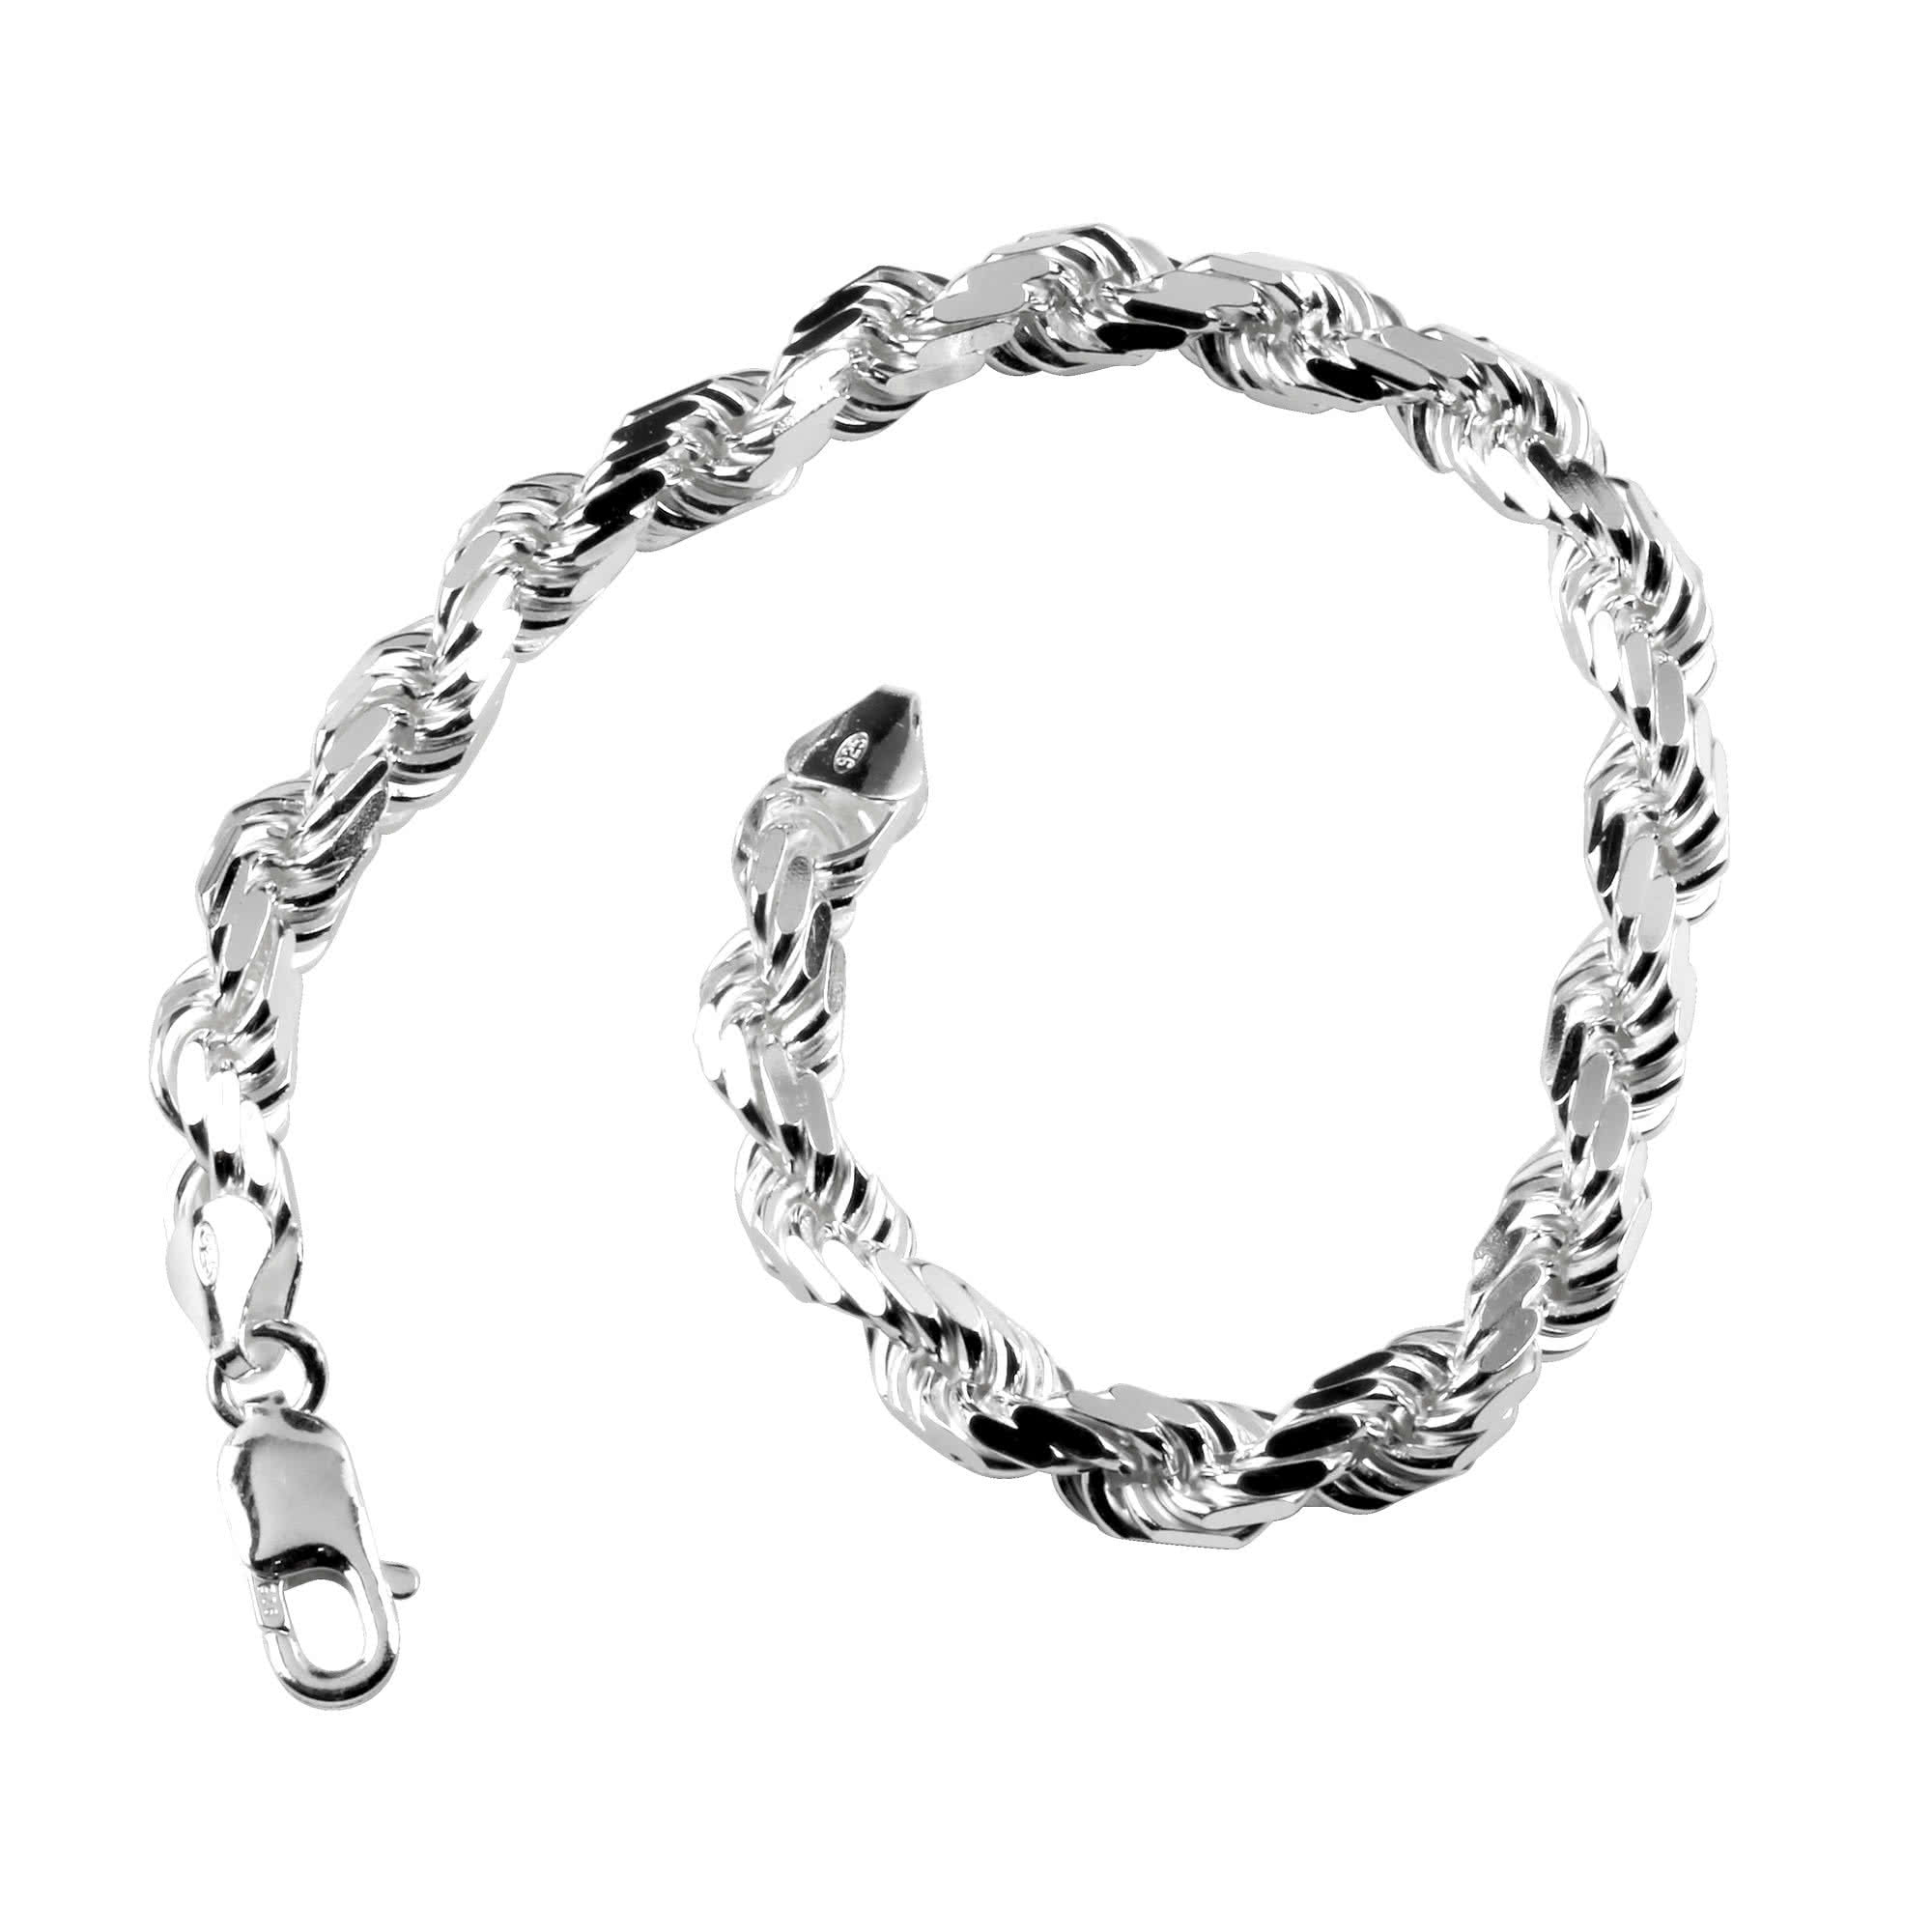 Solid Sterling Silver Diamond Cut Rope Bracelet 7 20mm